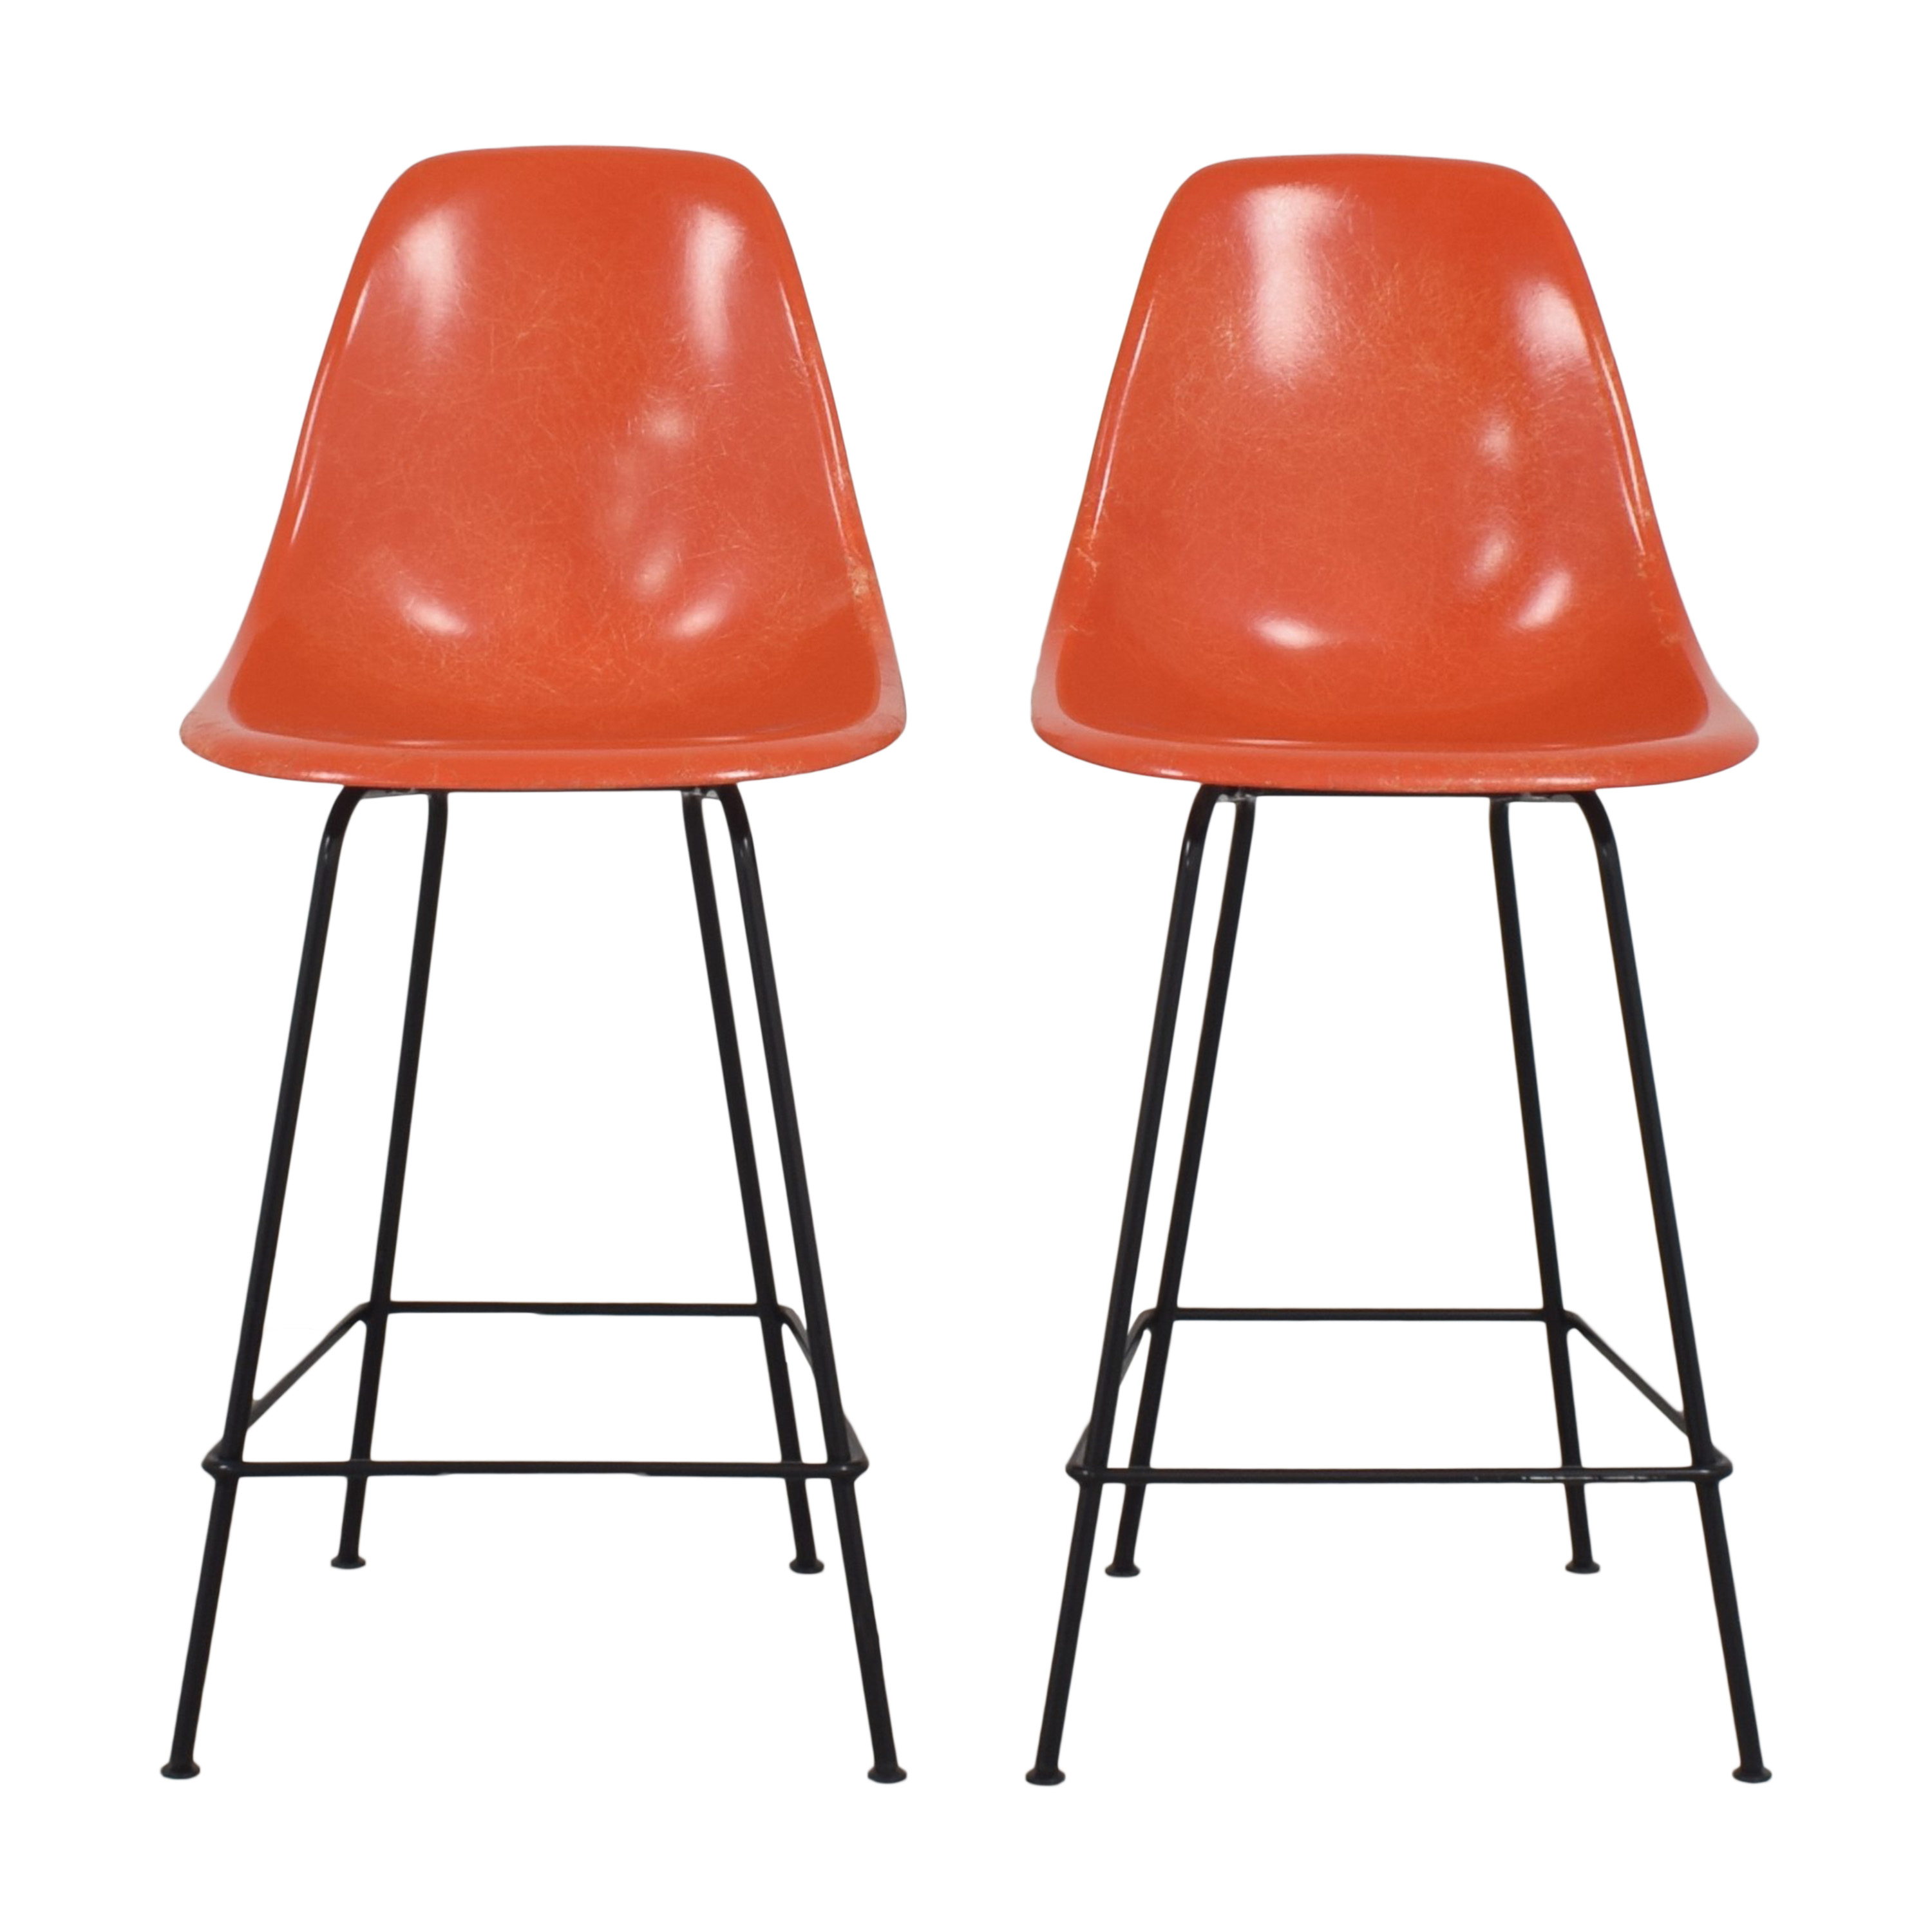 Herman Miller Herman Miller Eames Molded Counter Stools used